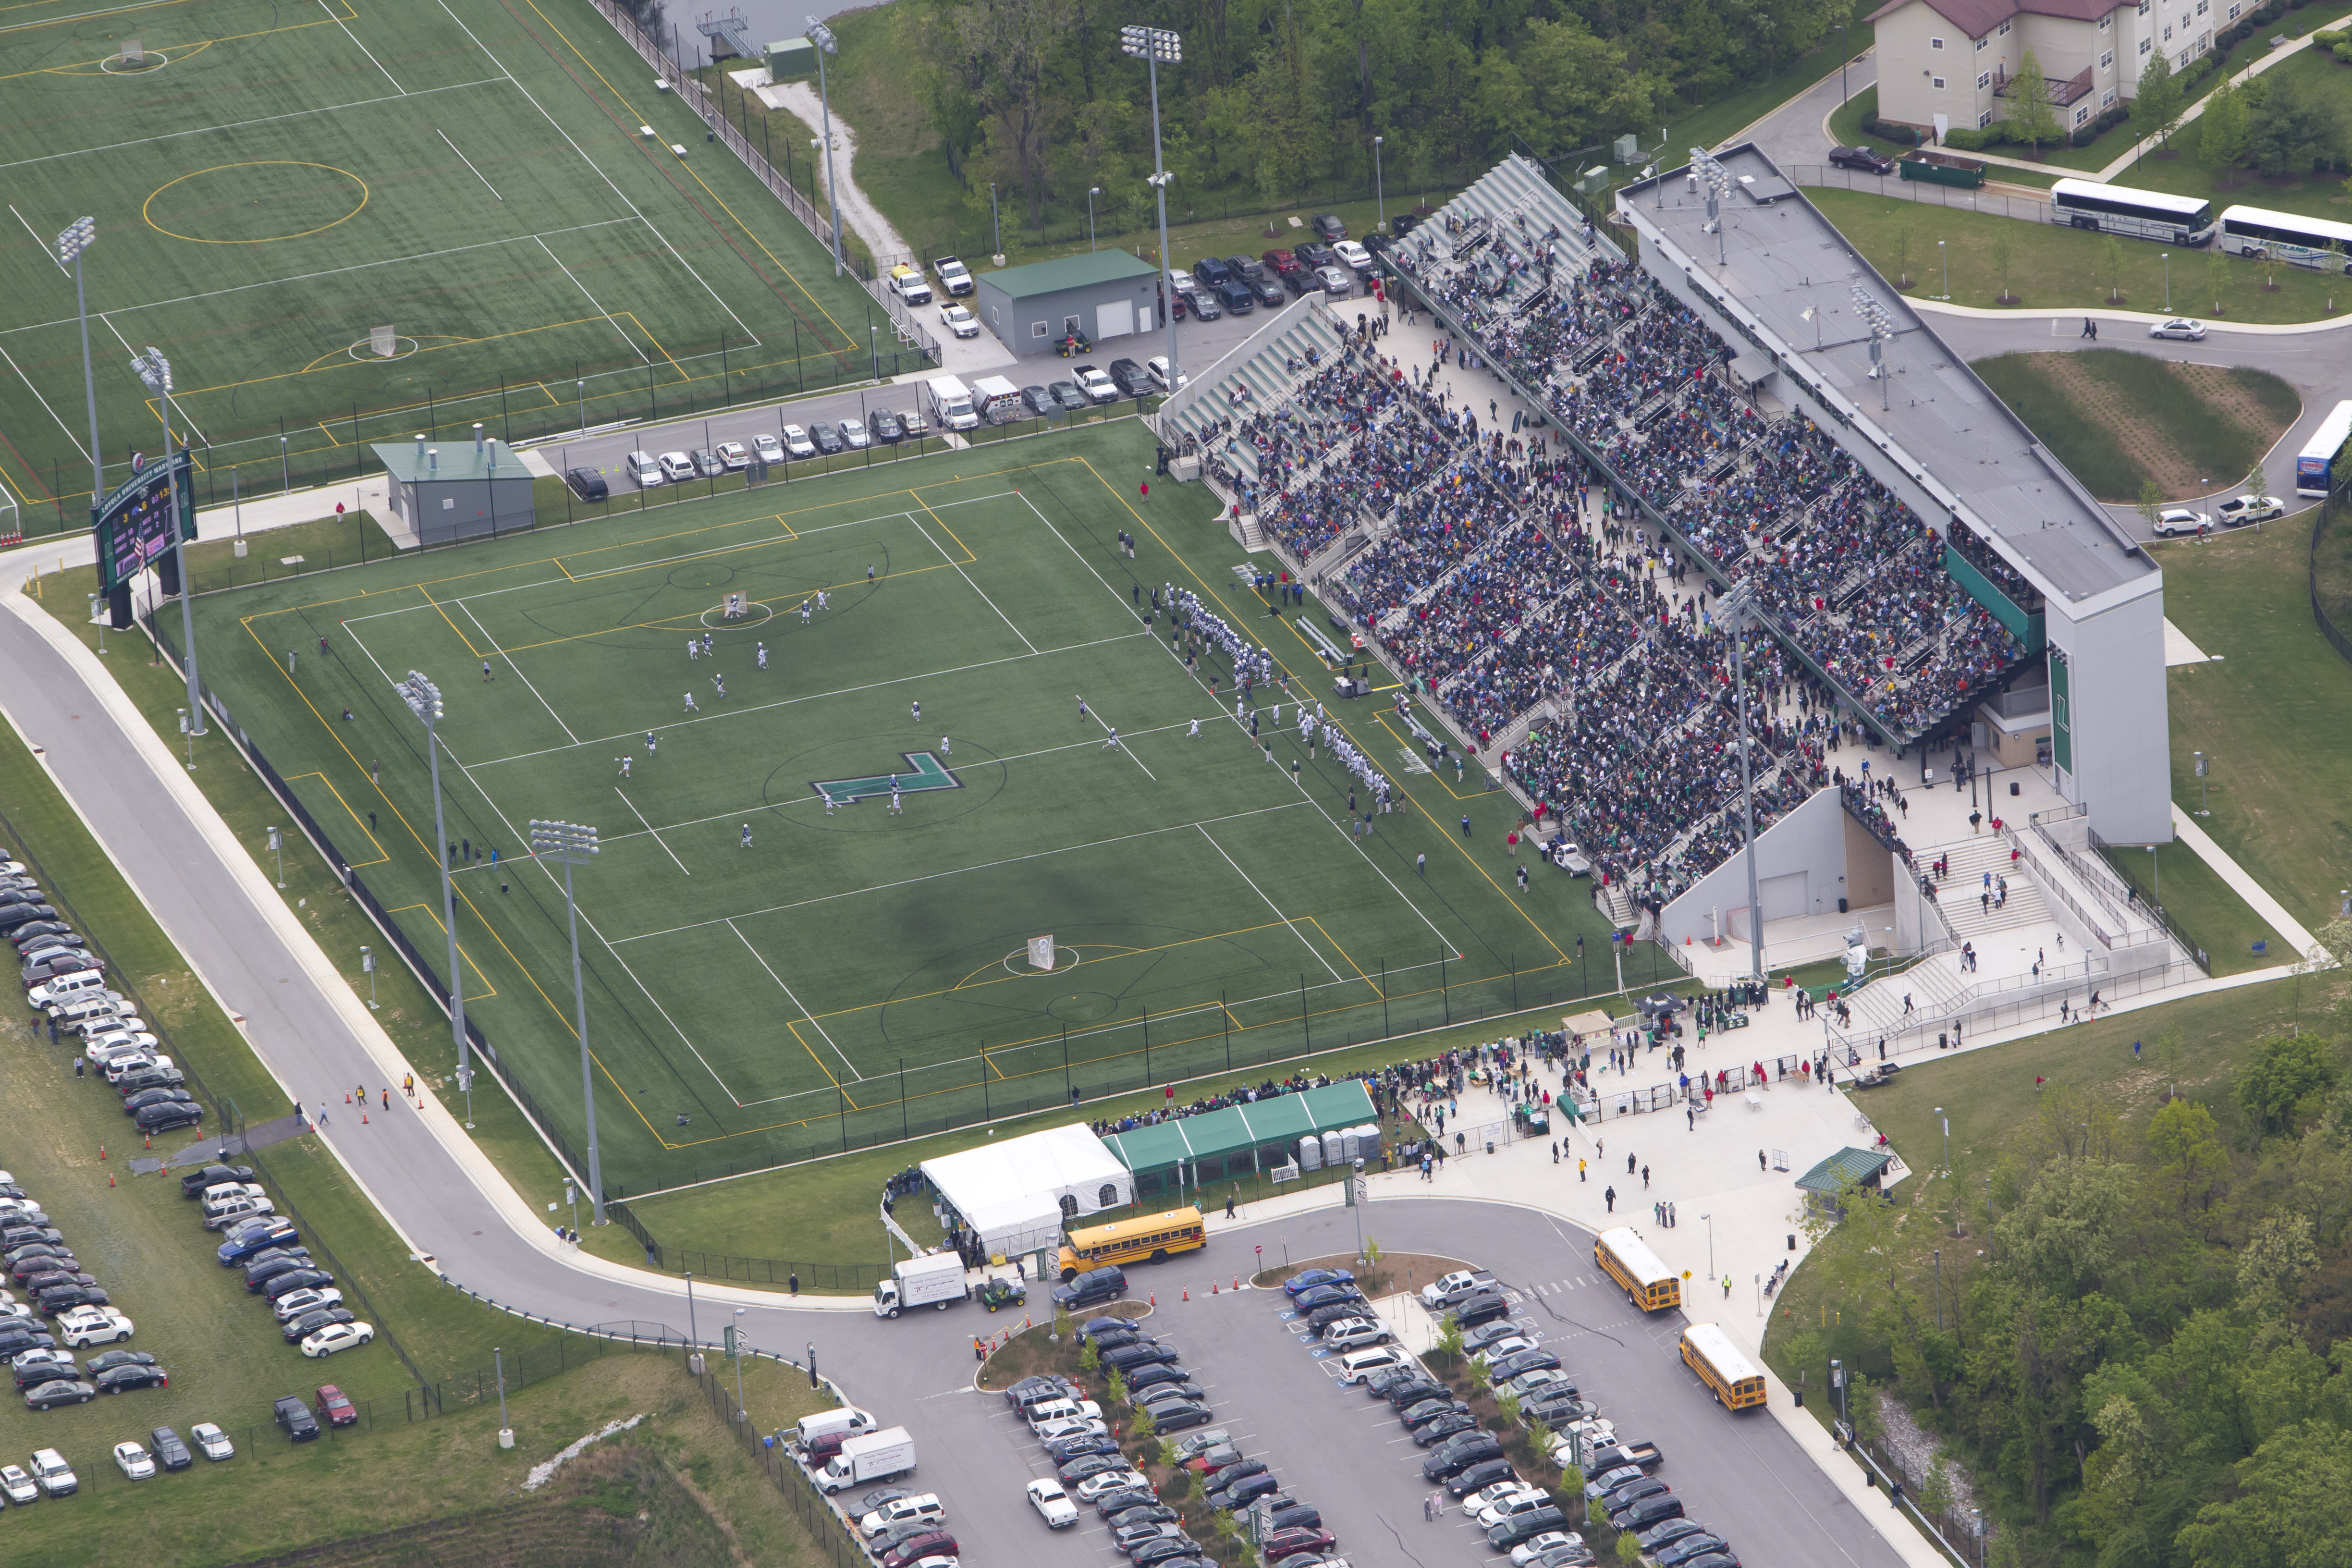 maine athletic complex - HD 4896×3264